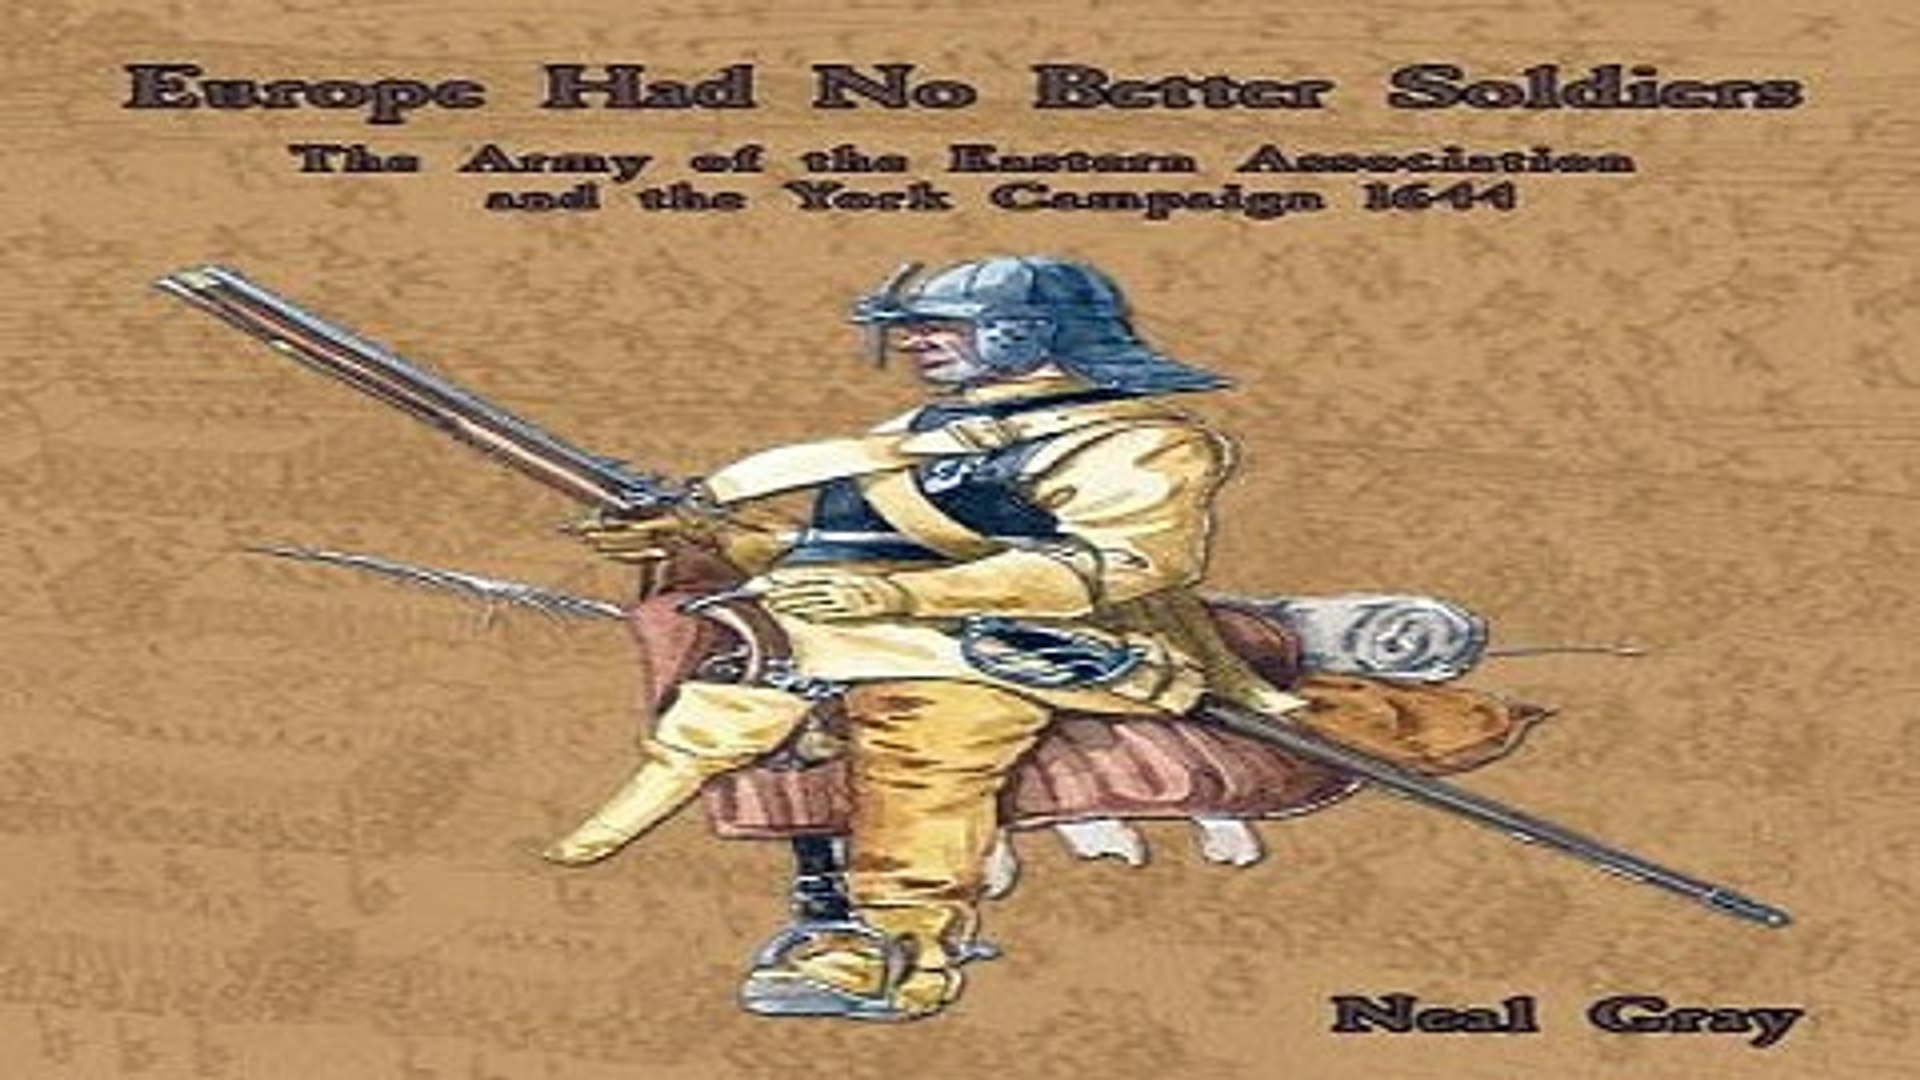 Read Europe Had No Better Soldiers  The Army of the Eastern Association and the York Campaign 1644